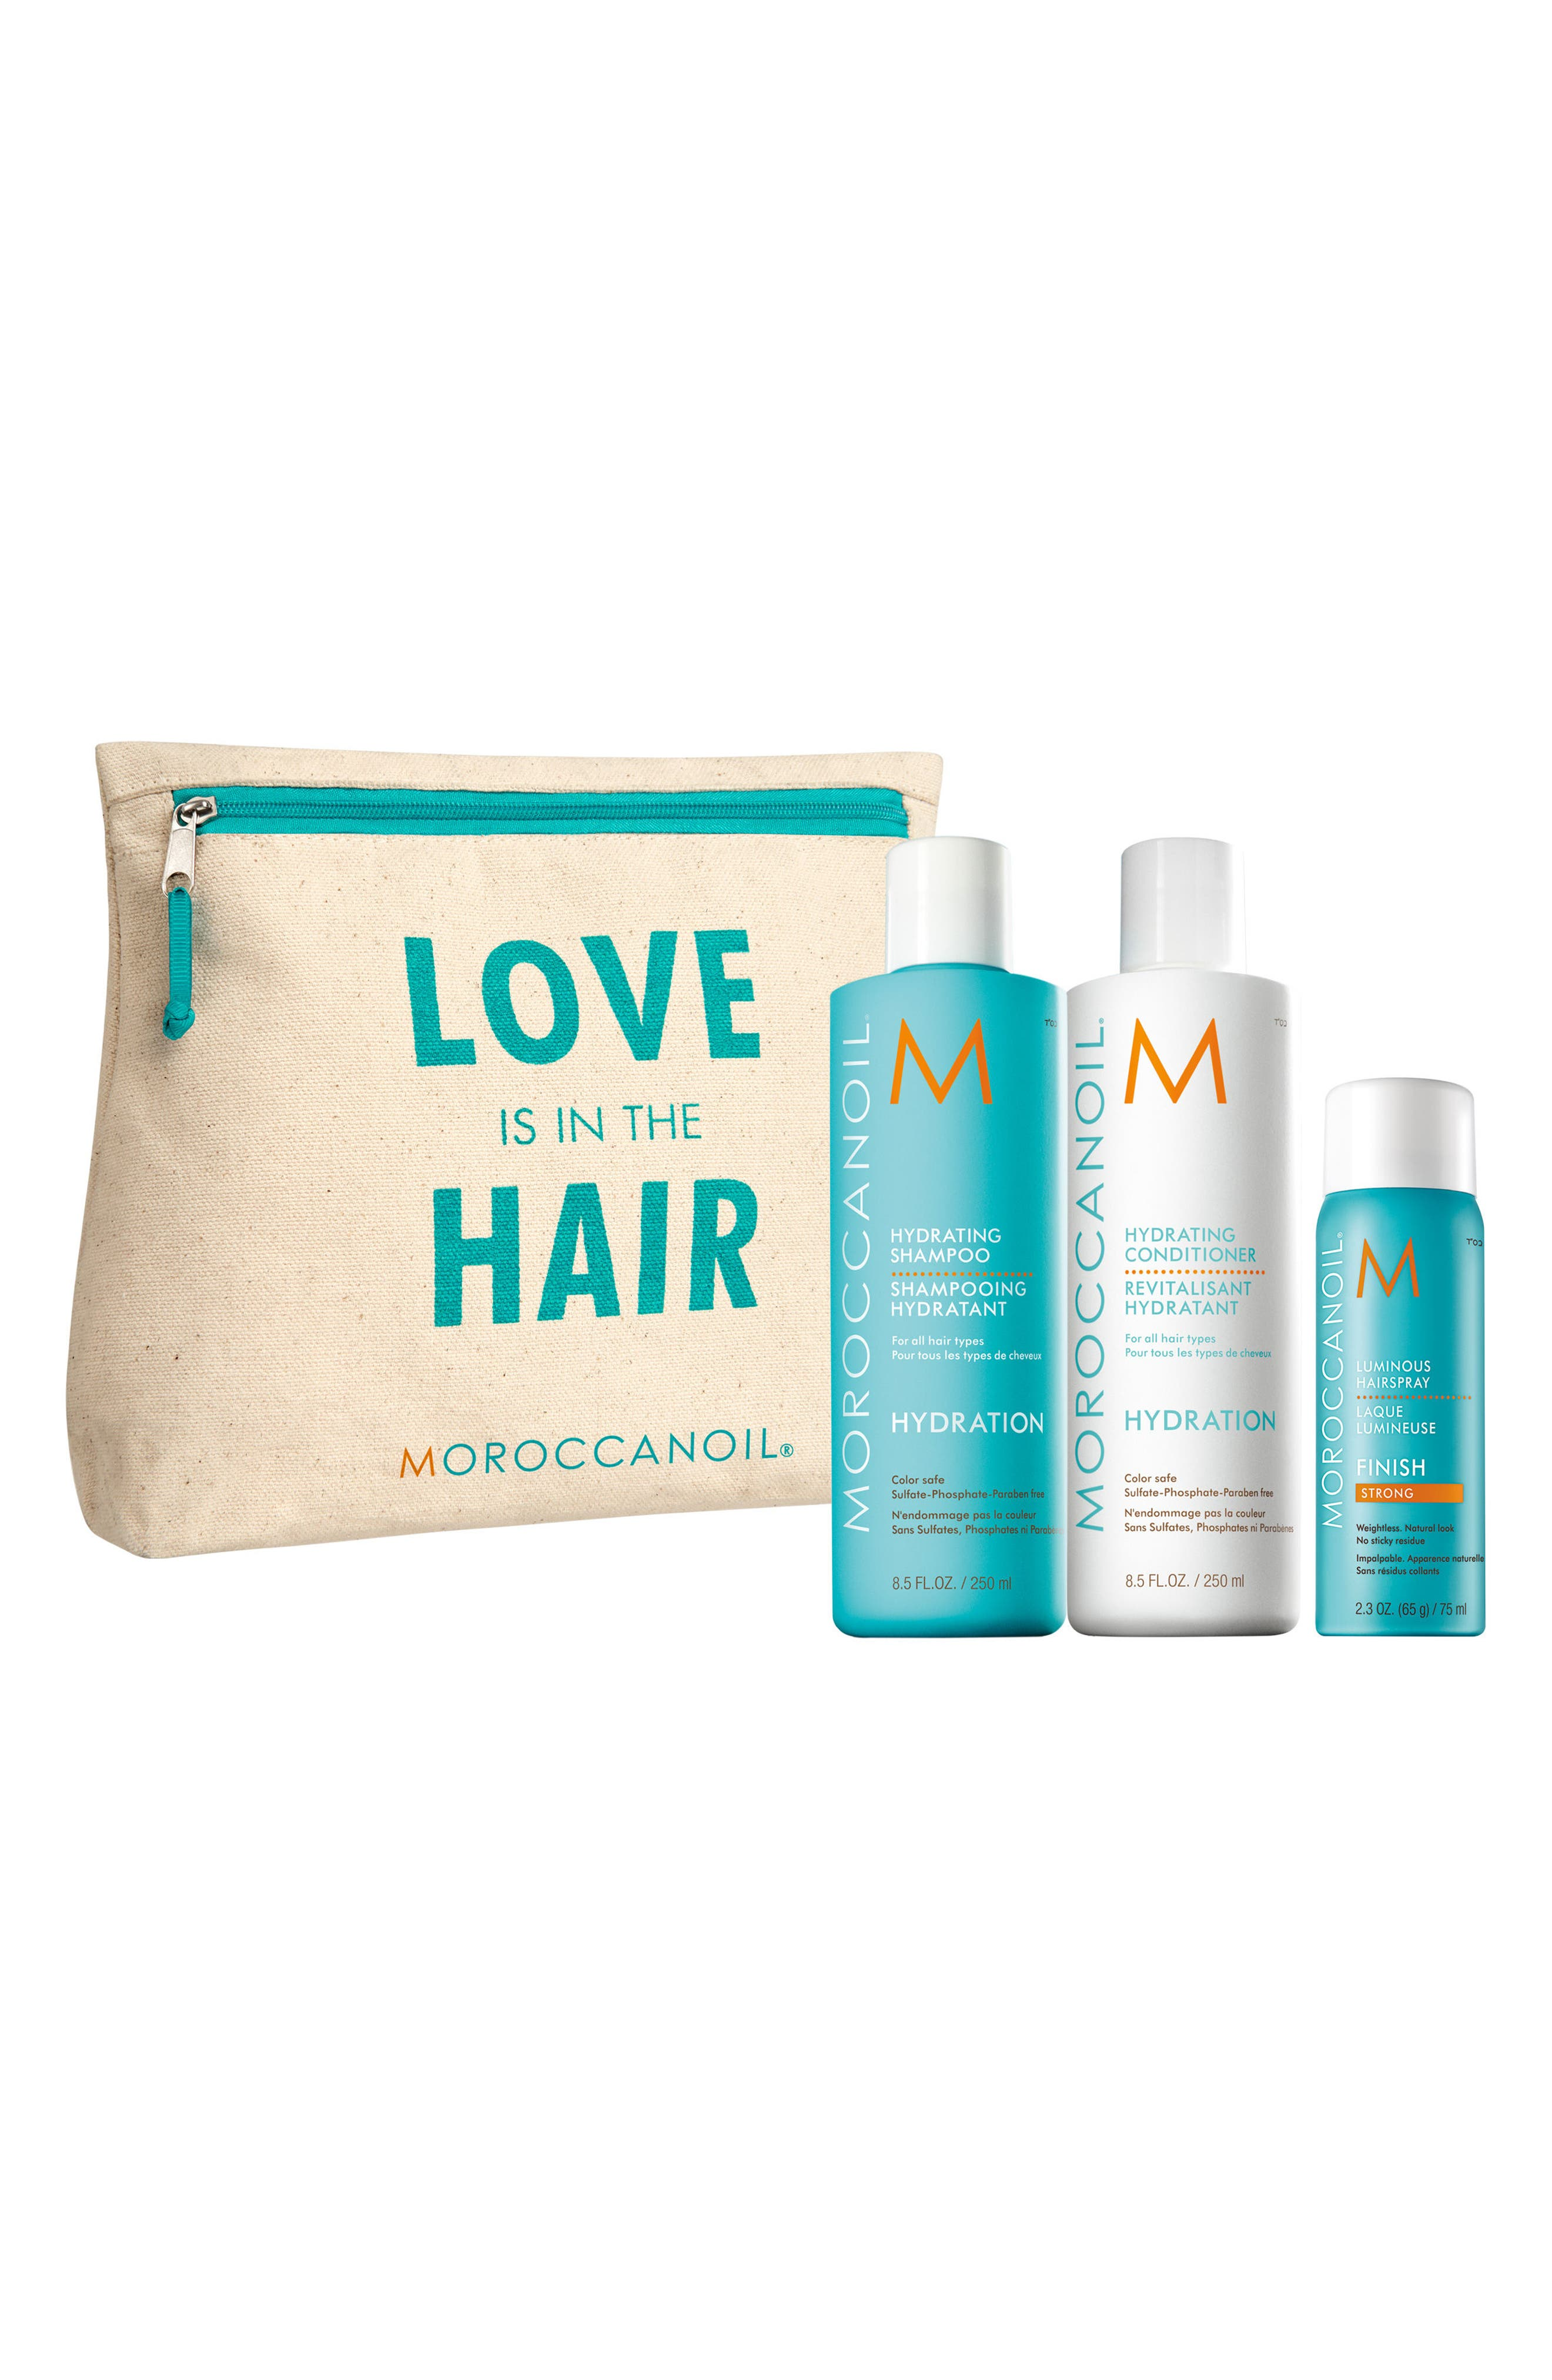 Alternate Image 1 Selected - MOROCCANOIL® Love is in the Hair Hydration Set ($57 Value)